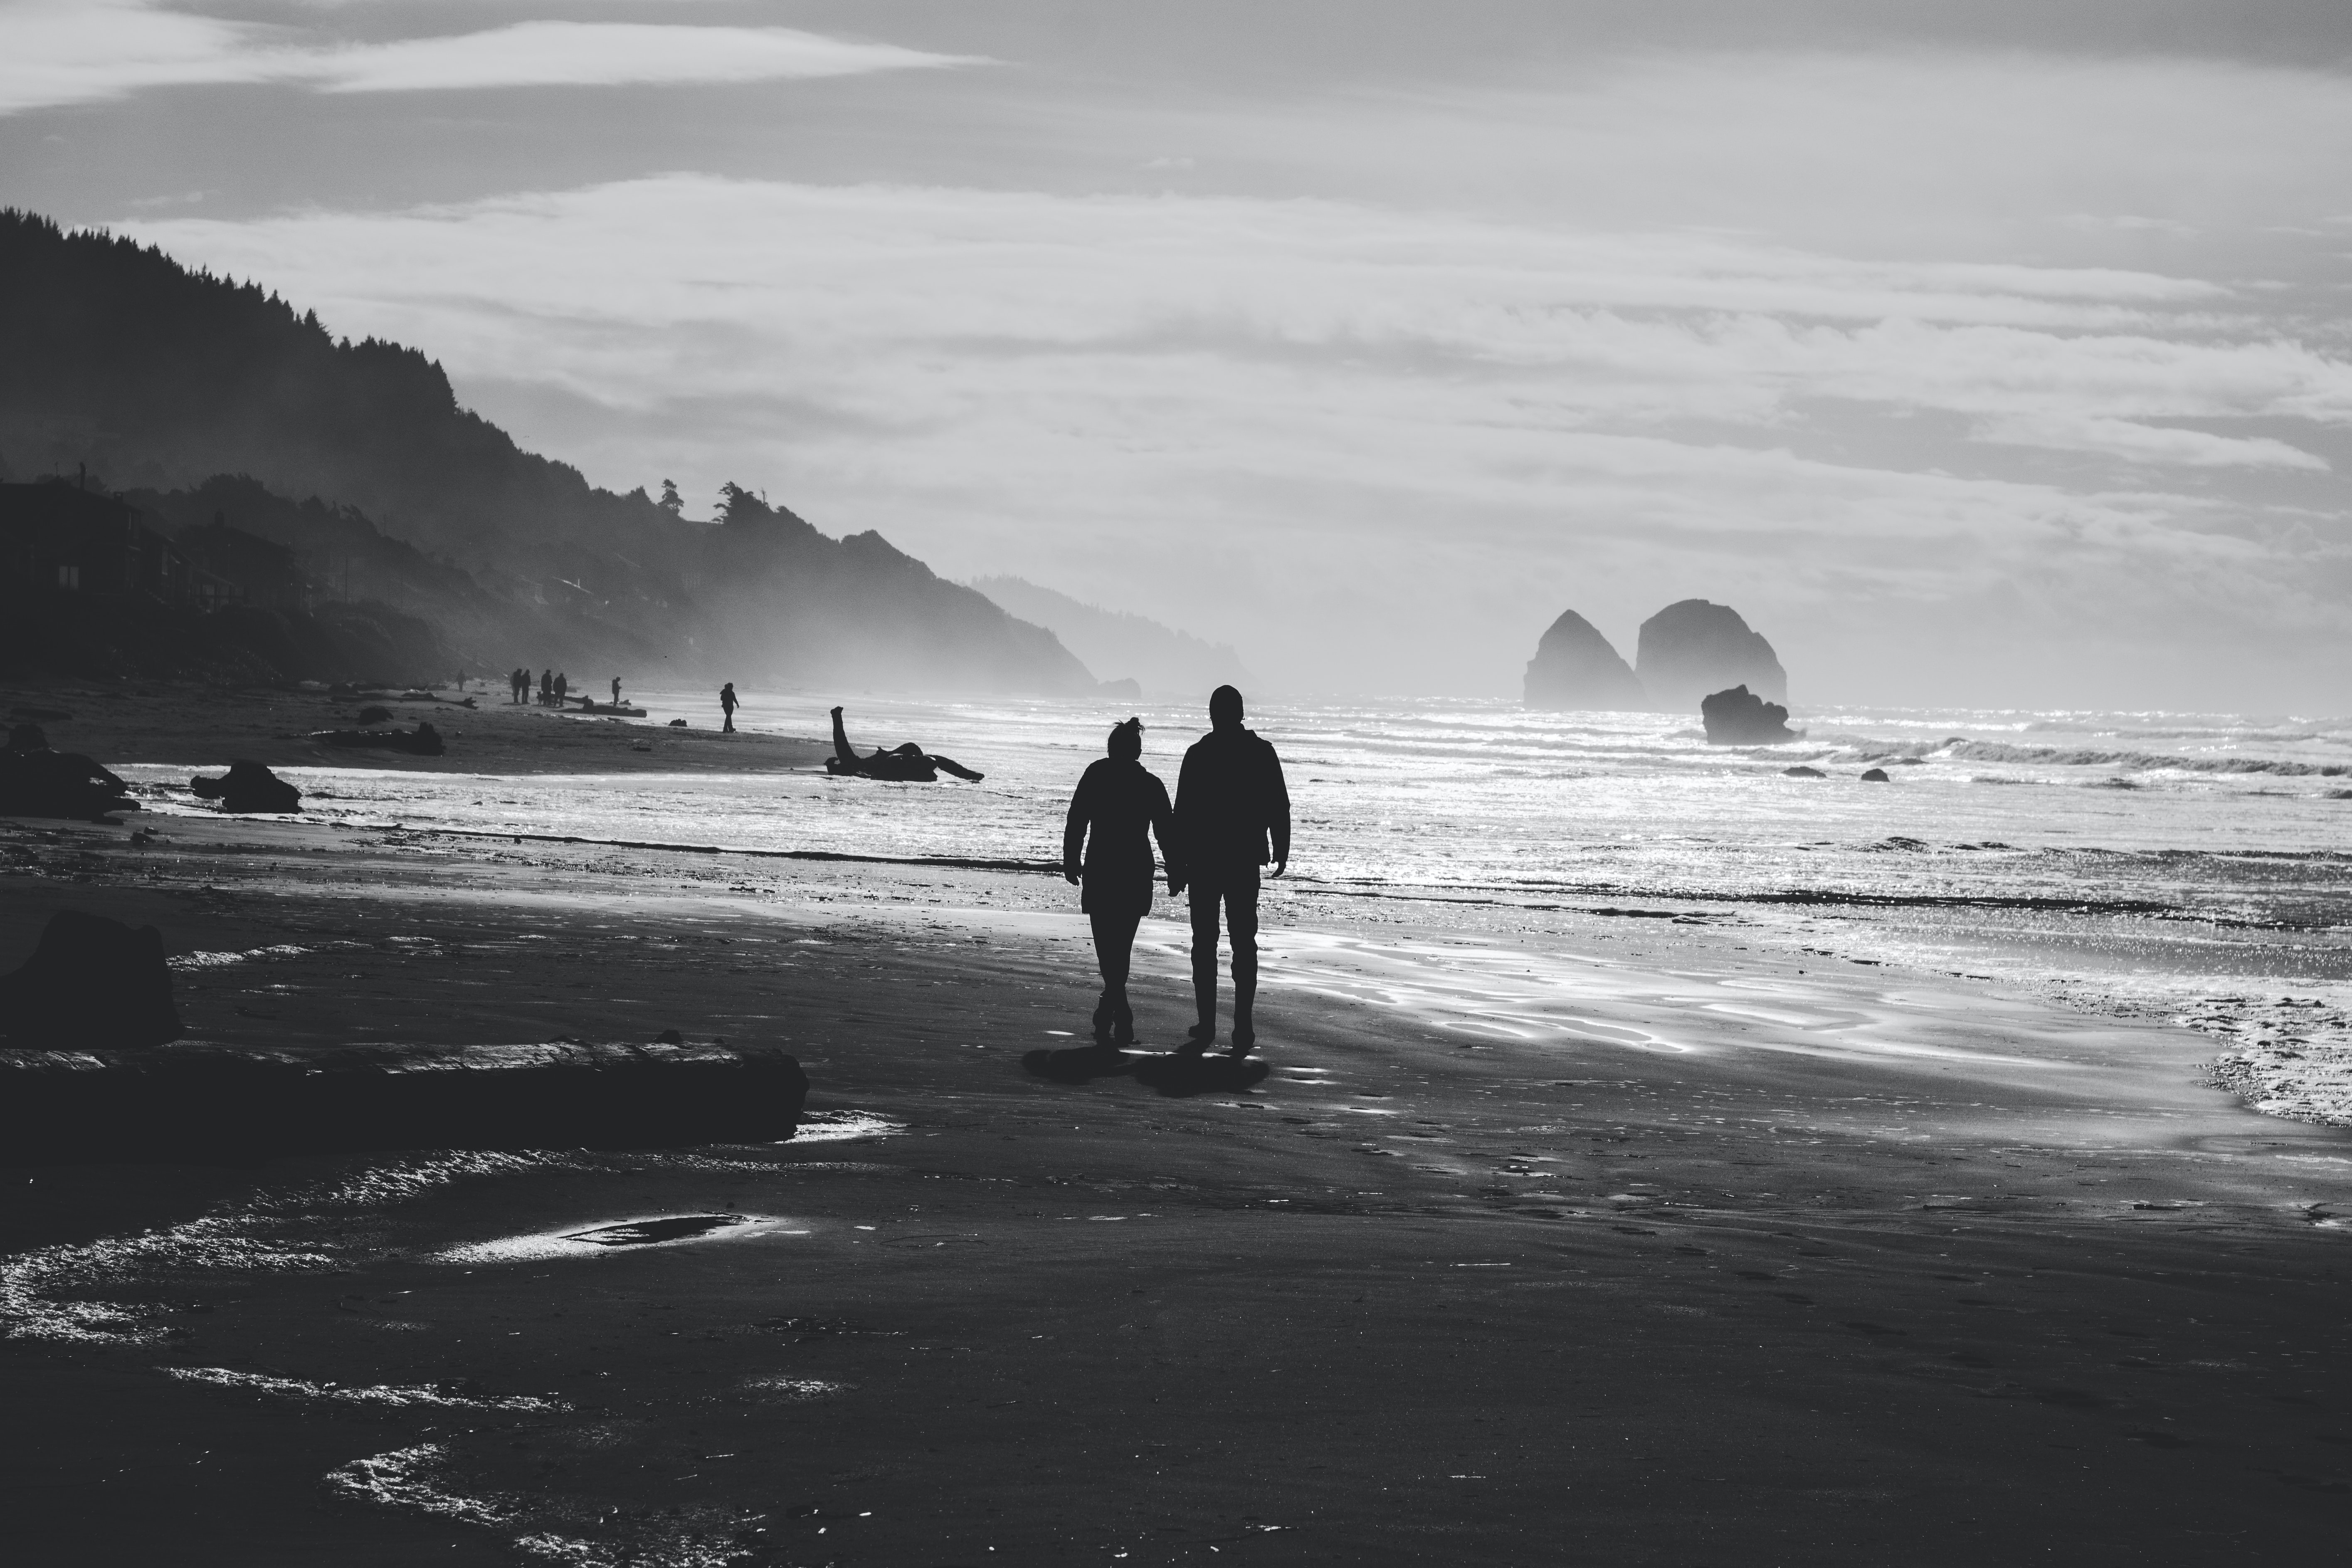 grayscale photo of man and woman walking on seashore